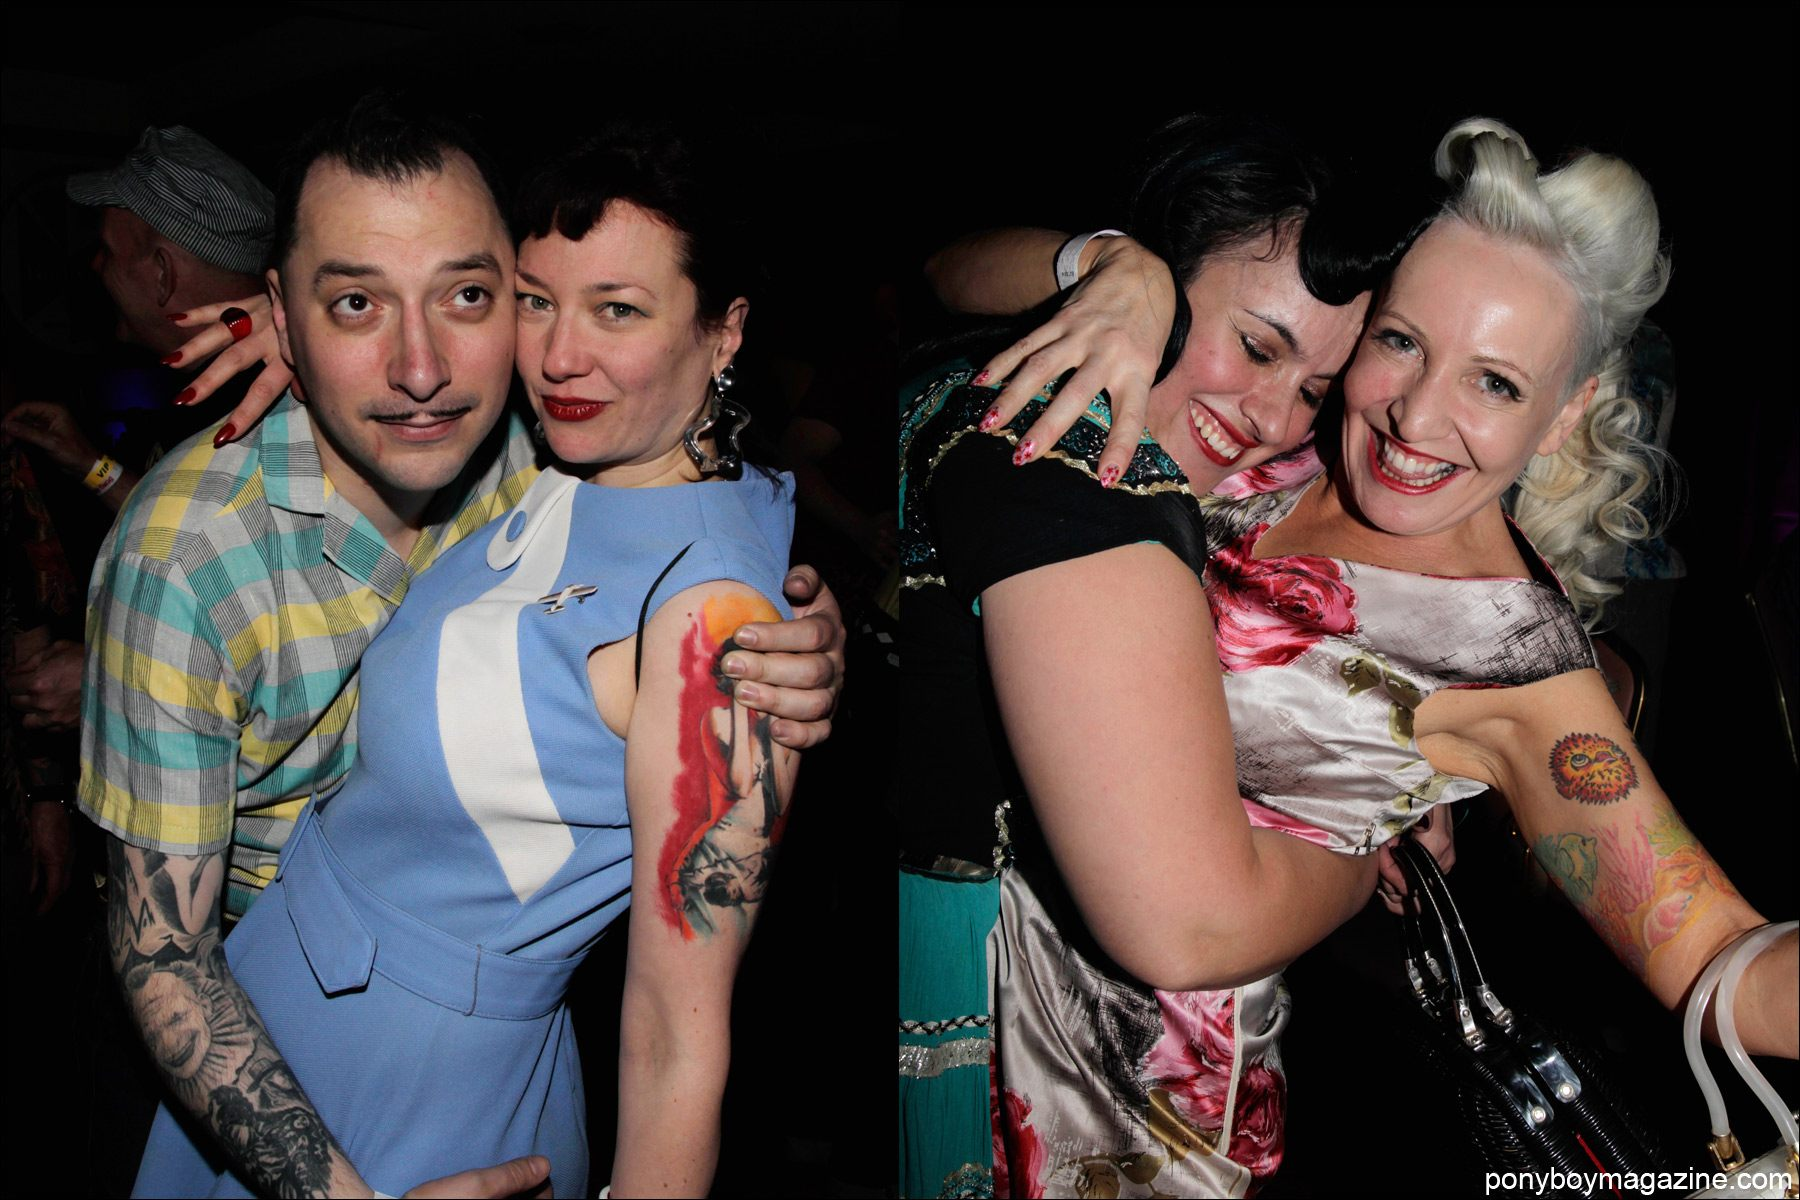 Rockabilly partygoers at Viva Las Vegas 17. Photograph by Alexander Thompson for Ponyboy Magazine.